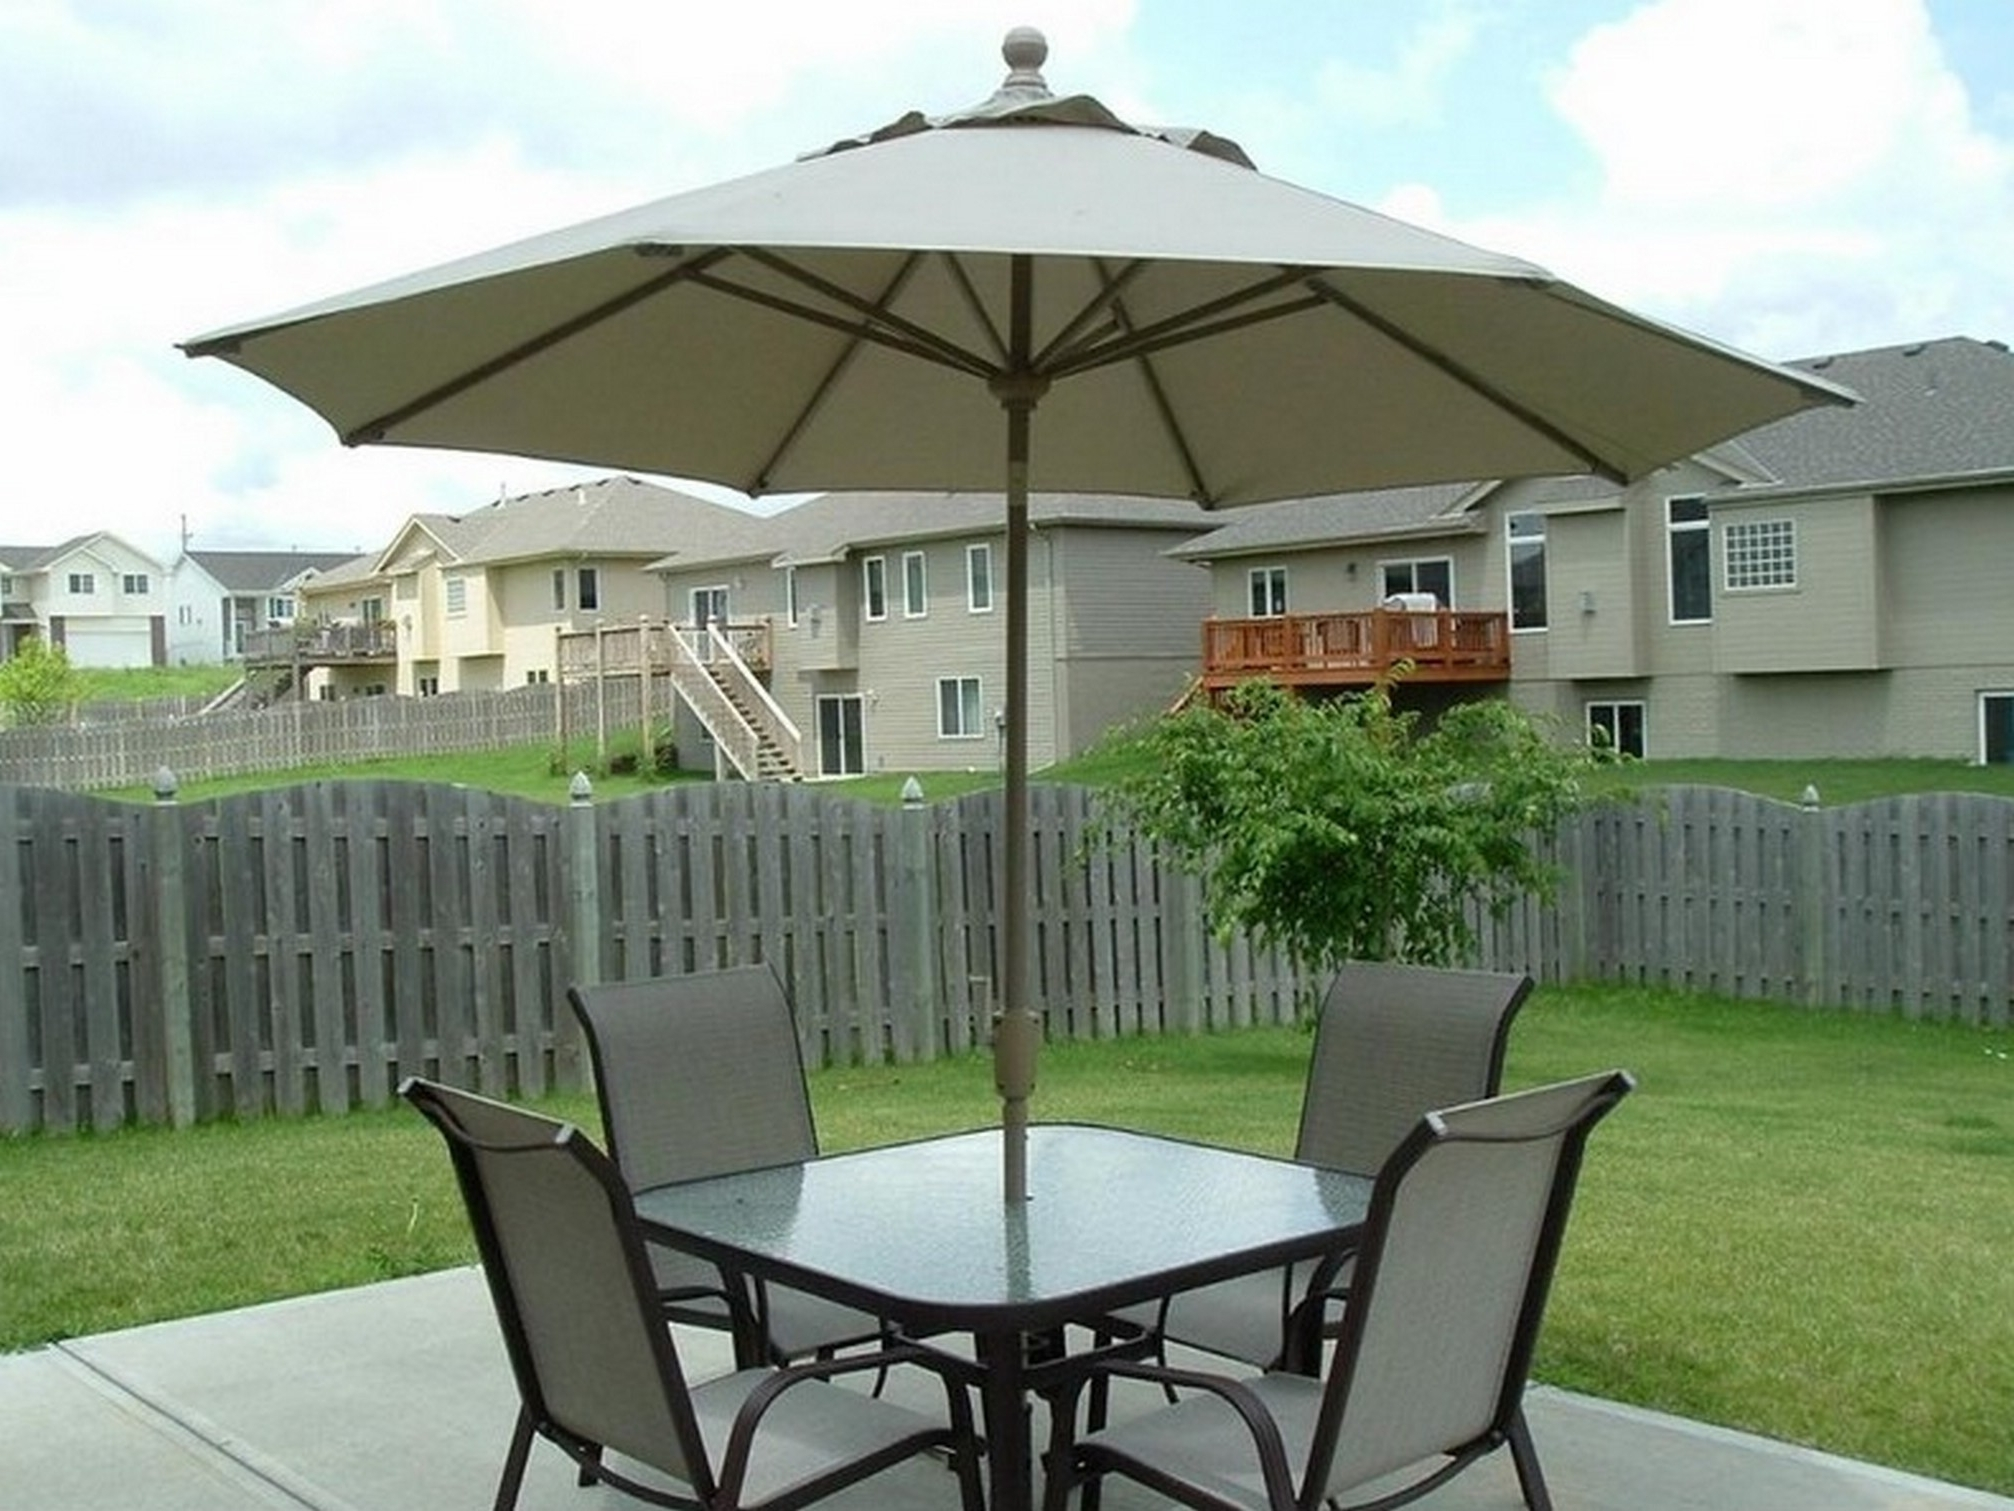 Luxury Bar Height Patio Table Concept Of Rotating Patio Umbrella Pertaining To Most Current Patio Umbrellas For Bar Height Tables (View 7 of 20)